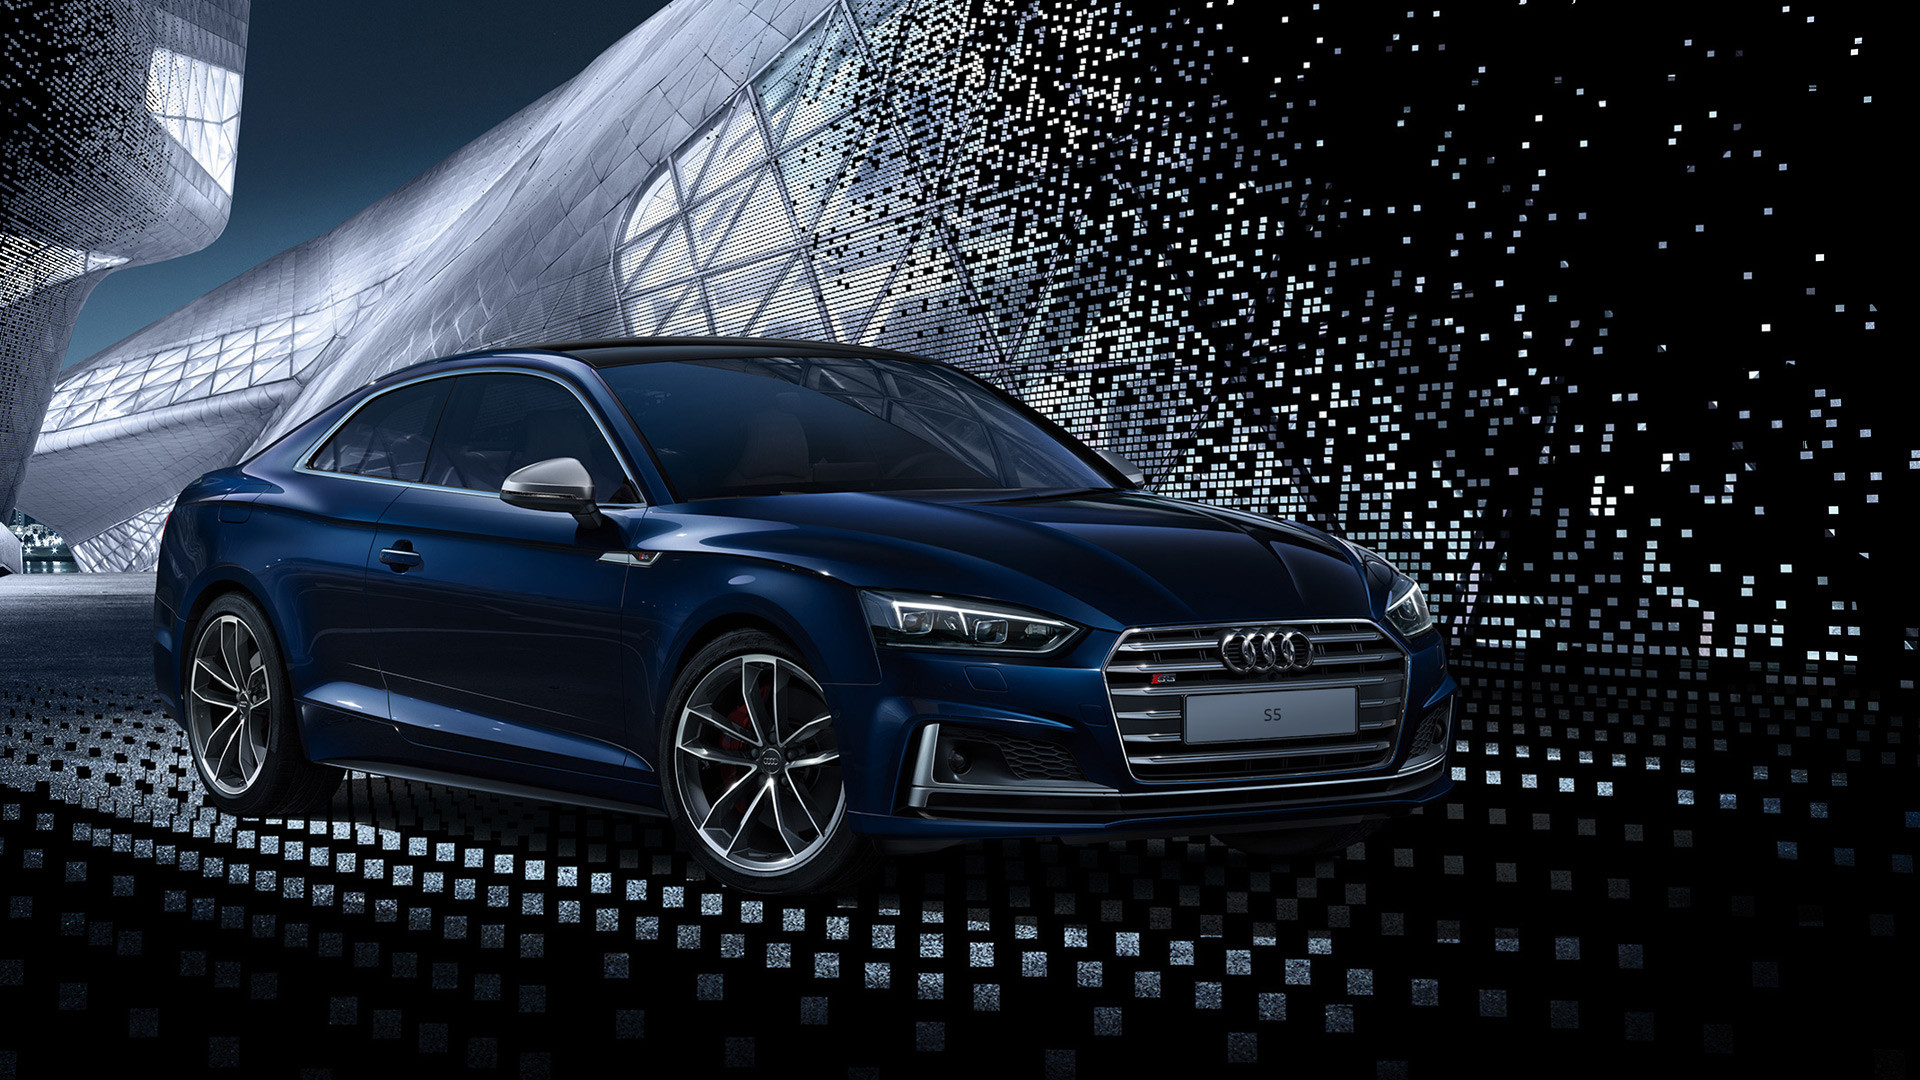 Res: 1920x1080, Audi images Audi S5 HD wallpaper and background photos